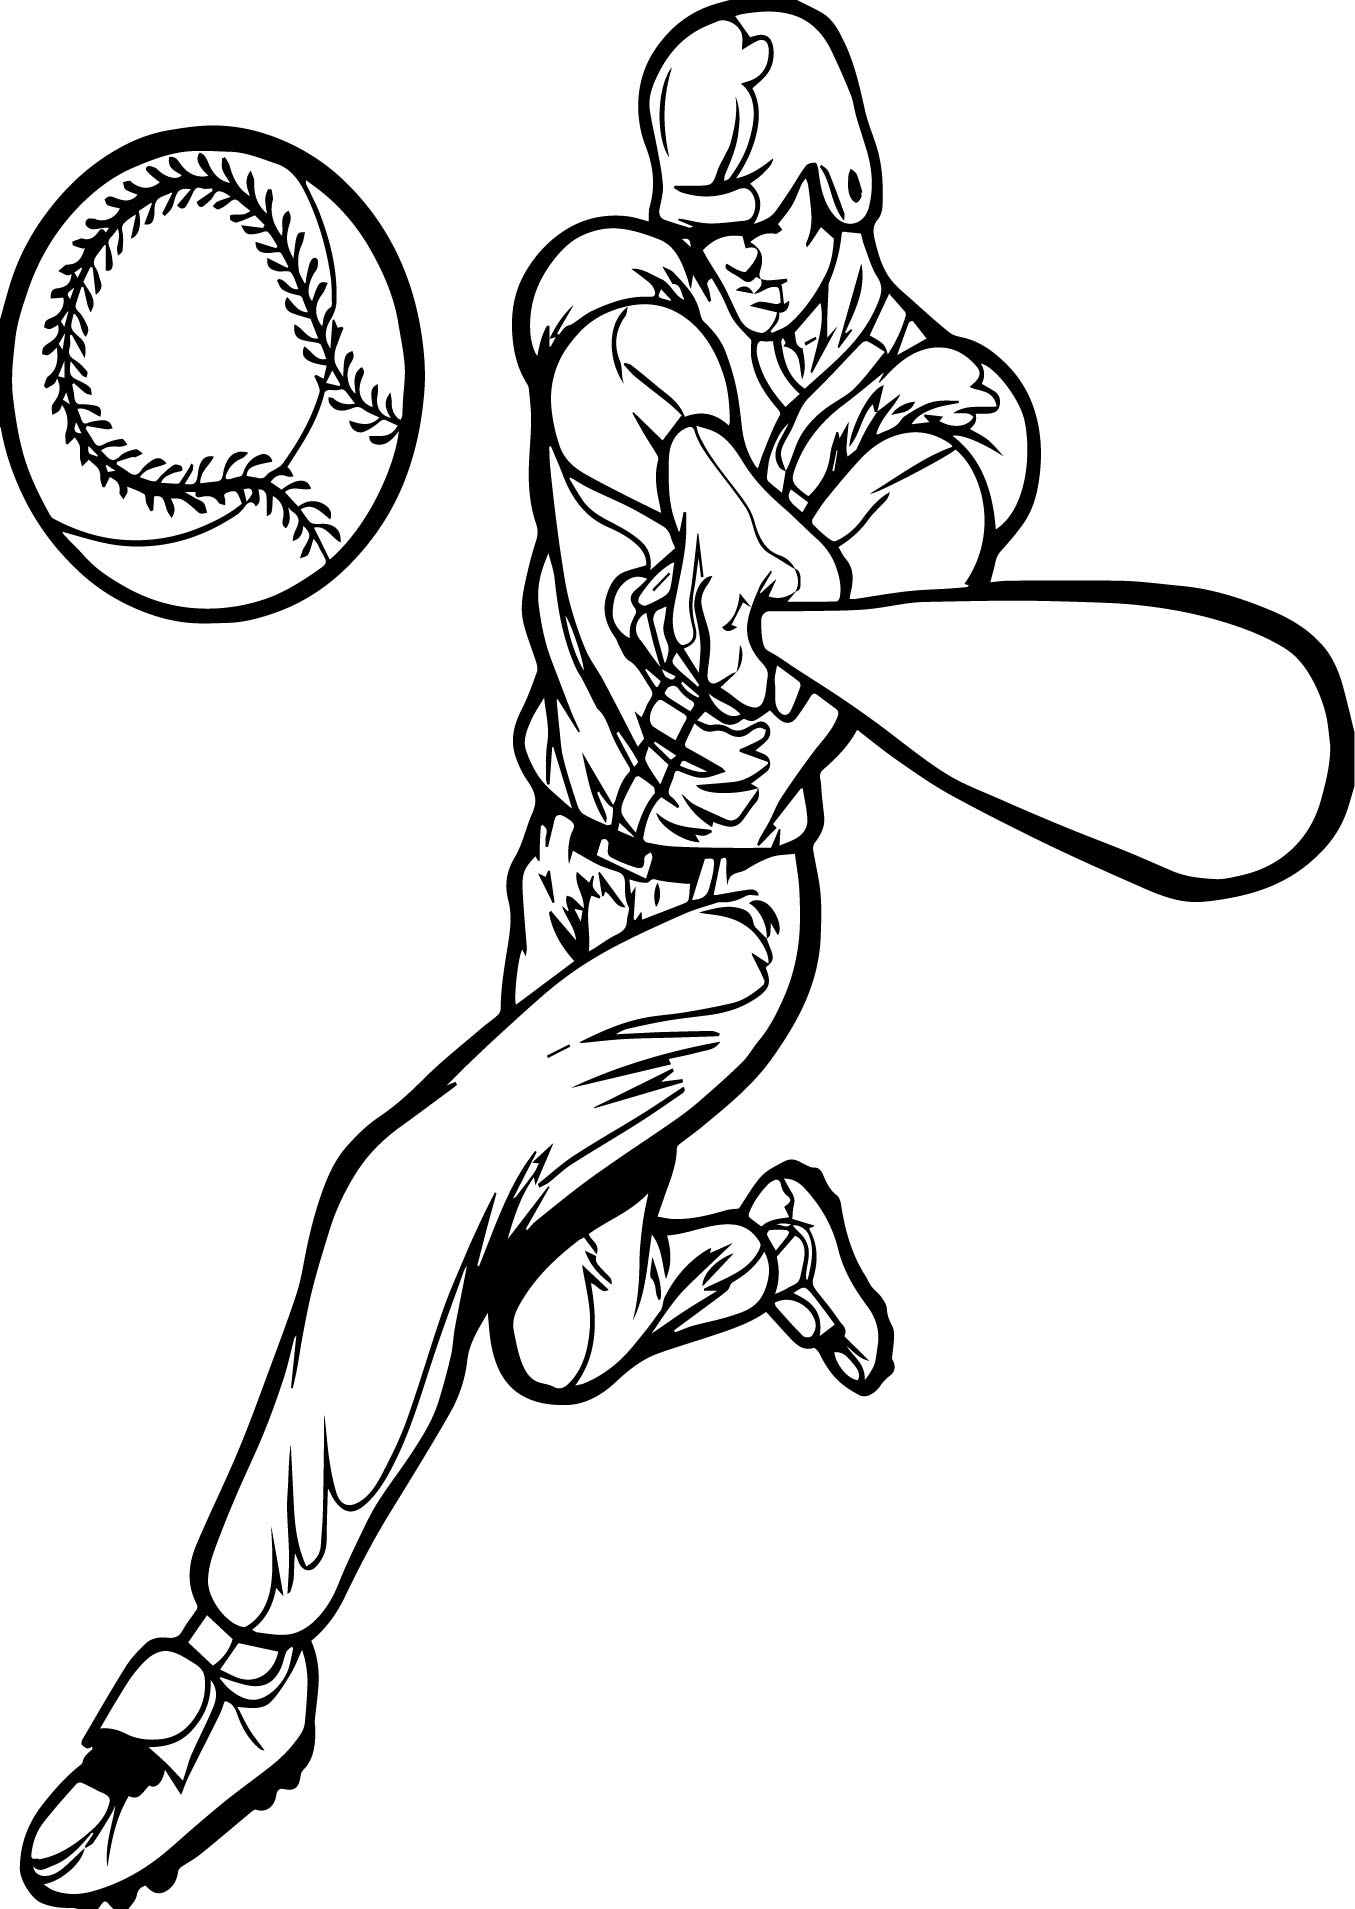 baseball coloring pictures baseball color pages pictures coloring baseball